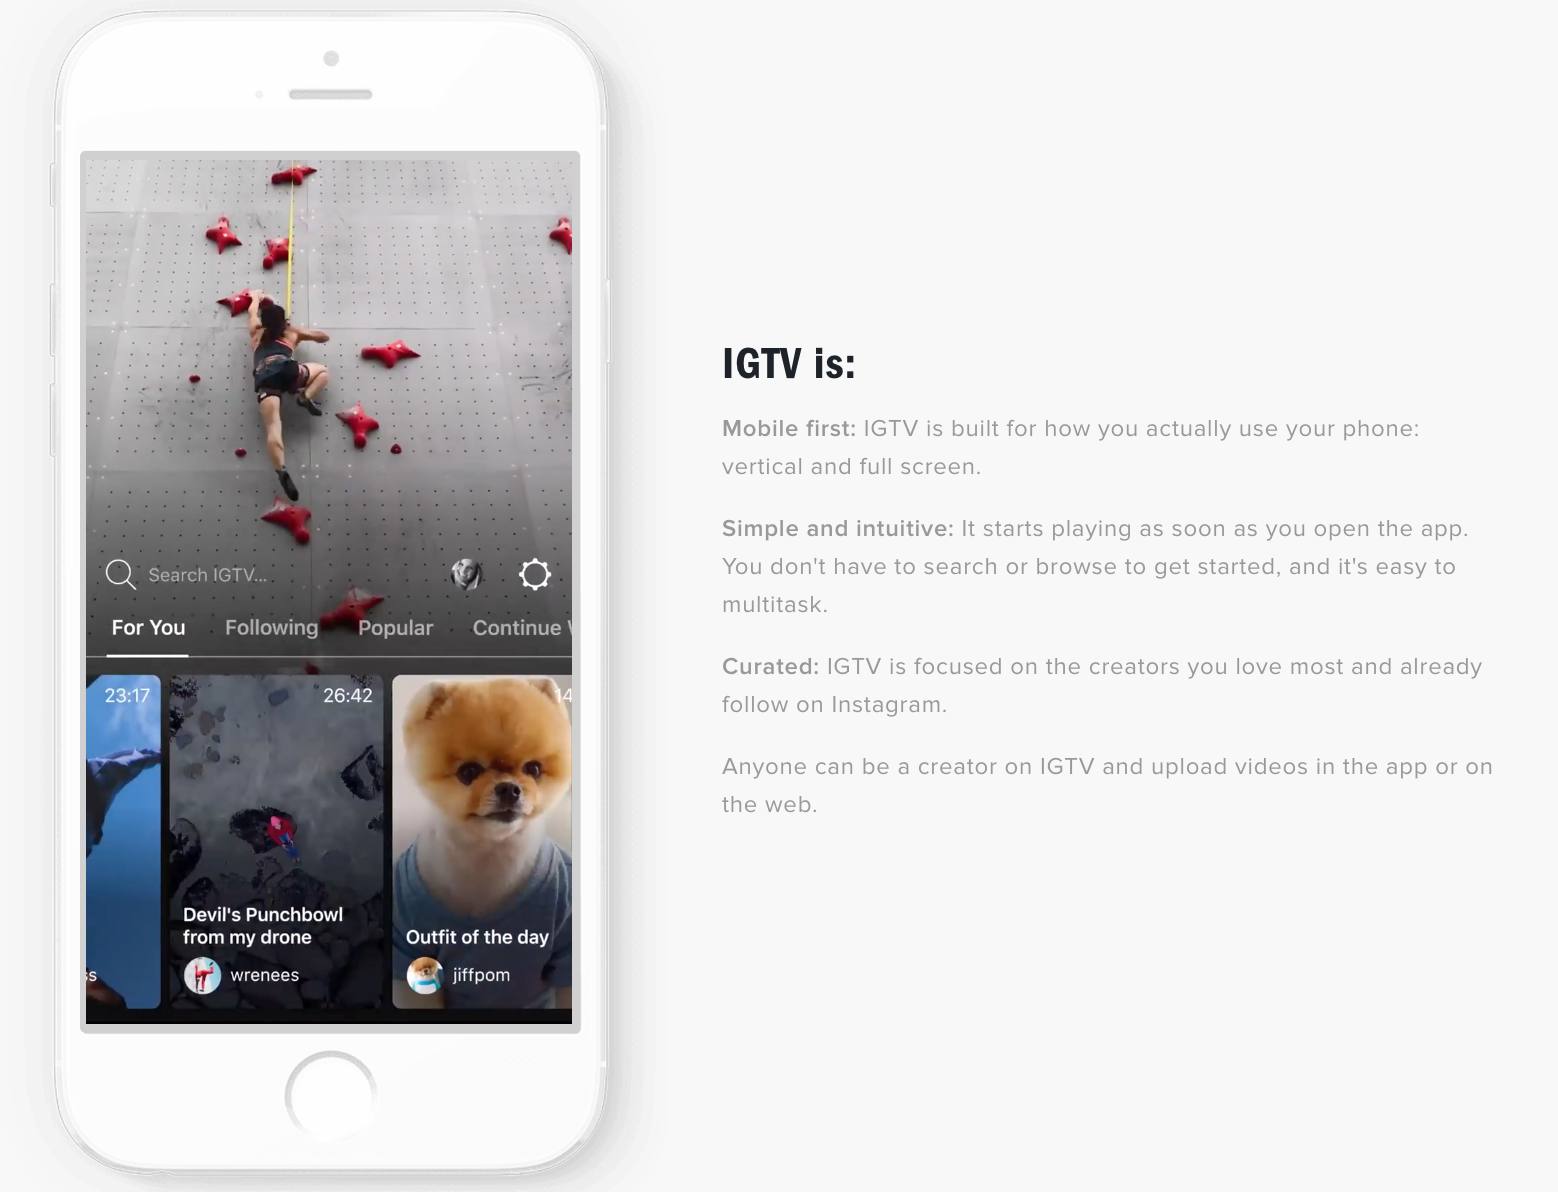 Instagram Announces IGTV App for Watching Long-Form, Vertical Video